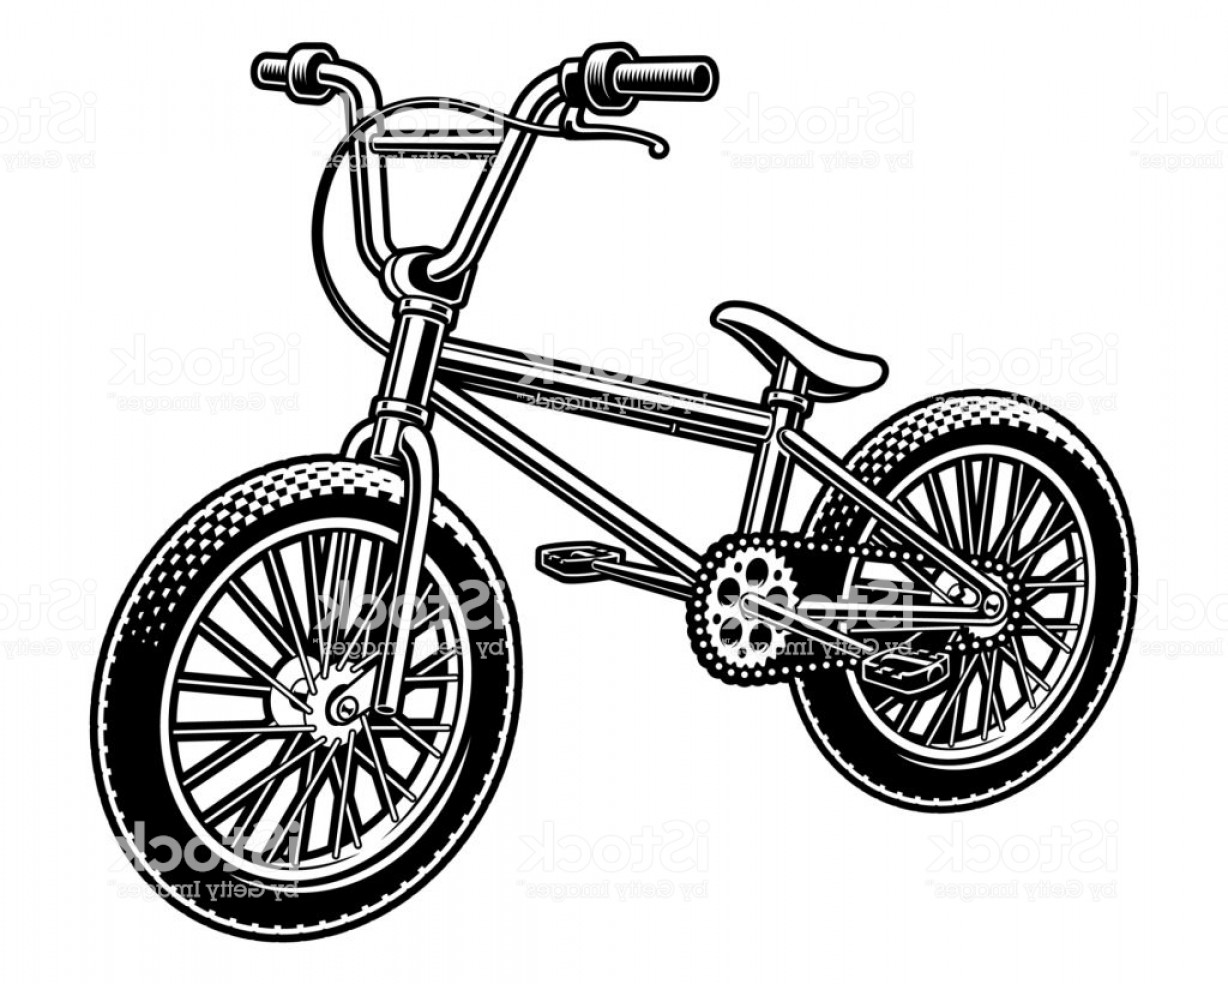 BMX Bike Tire Vector: Vector Illustration Of A Bmx Bicycle Gm